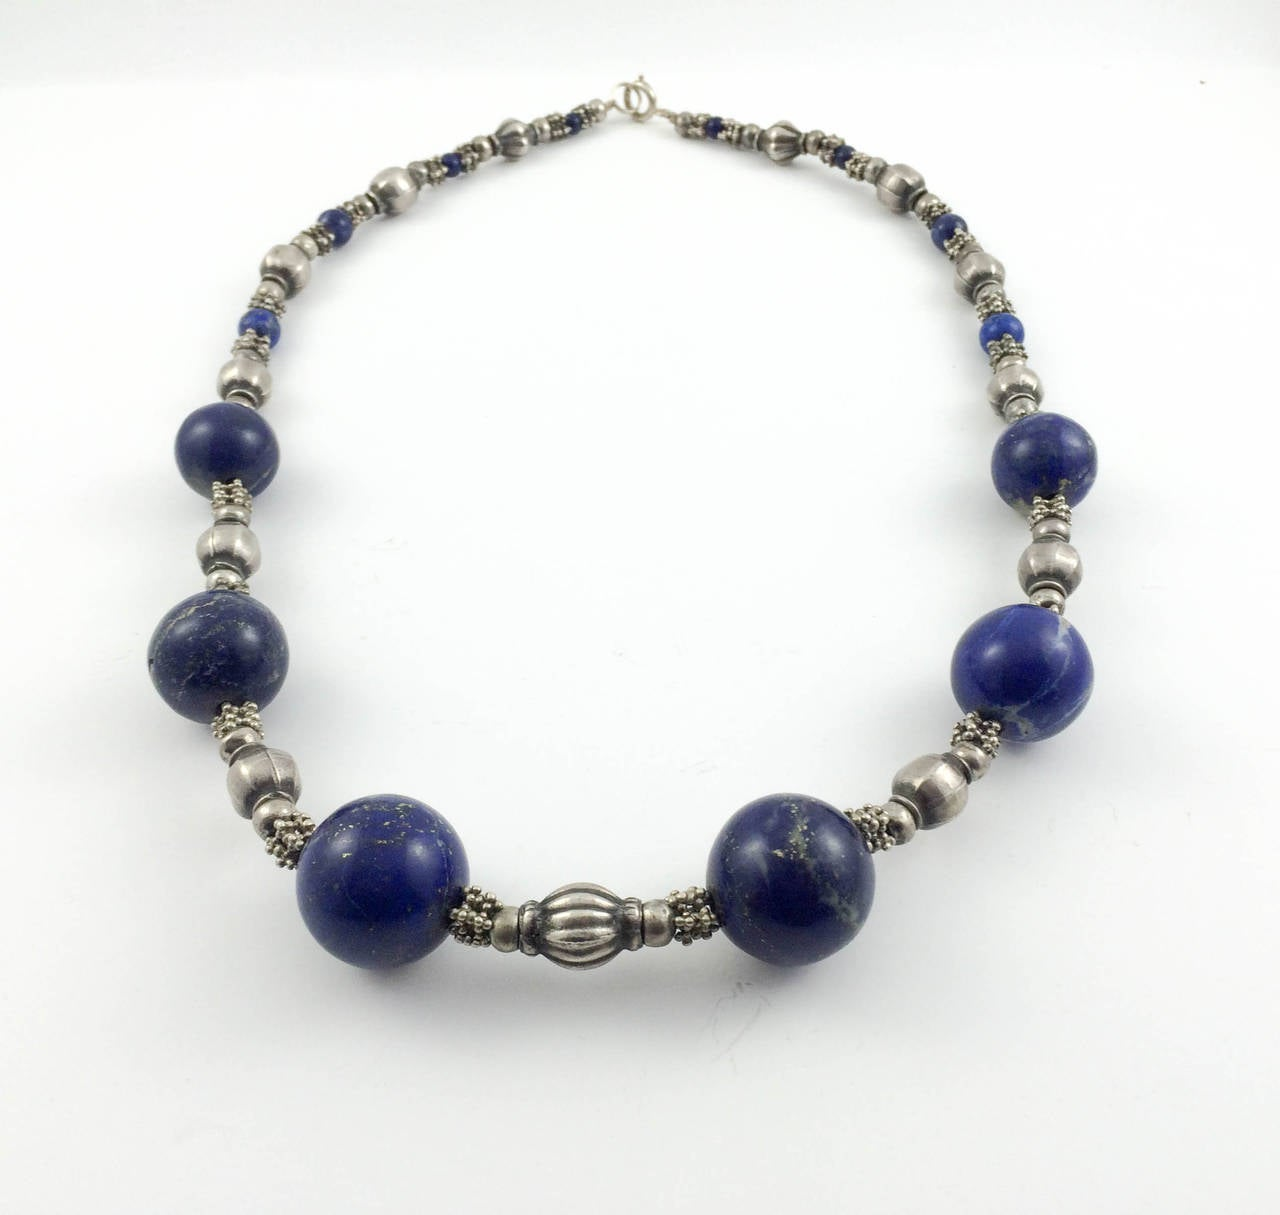 Women's Silver and Lapis Lazuli Necklace - 1970s For Sale